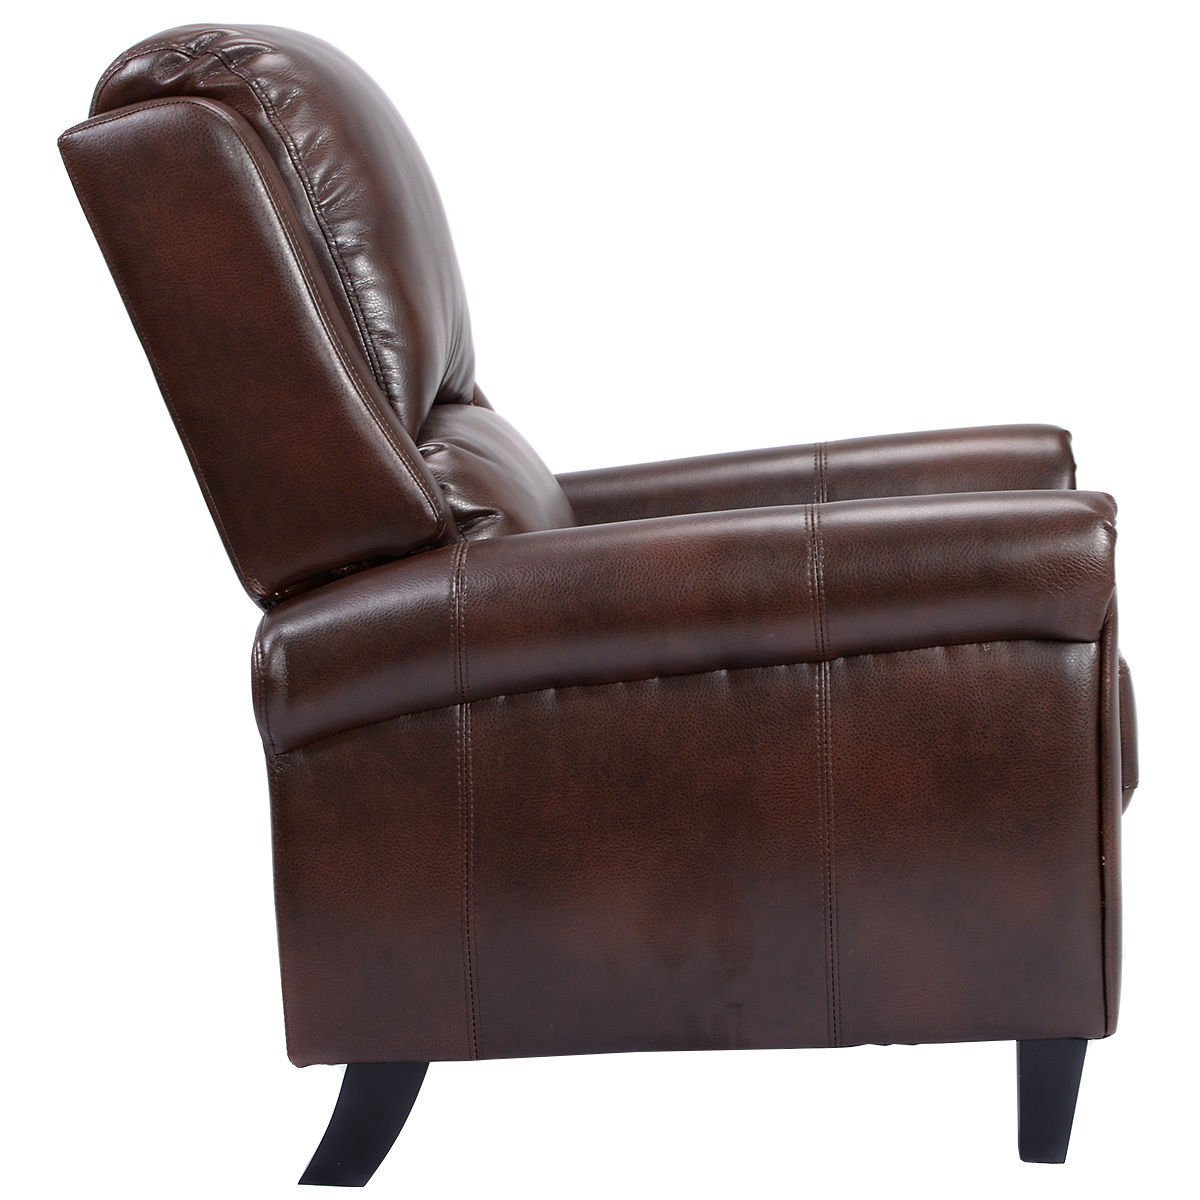 Amazon.com: Giantex PU Leather Recliner Chair Push Back Club Living Room  Seat Furniture W/Footrest (Brown): Kitchen U0026 Dining